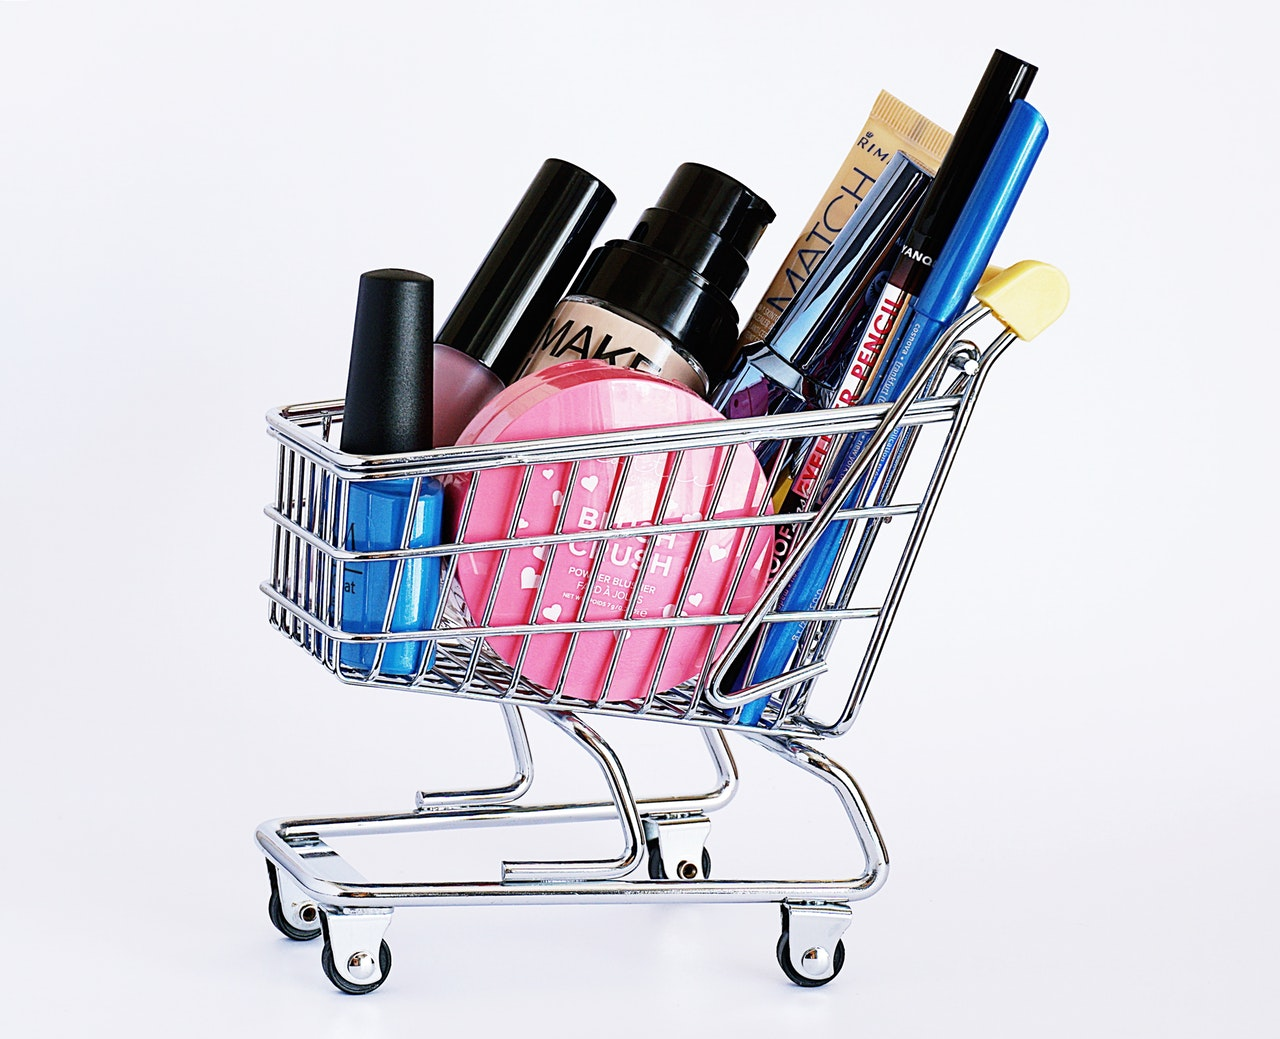 Addressing Regulatory Compliance of Cosmetics Manufacturing & Sales in India